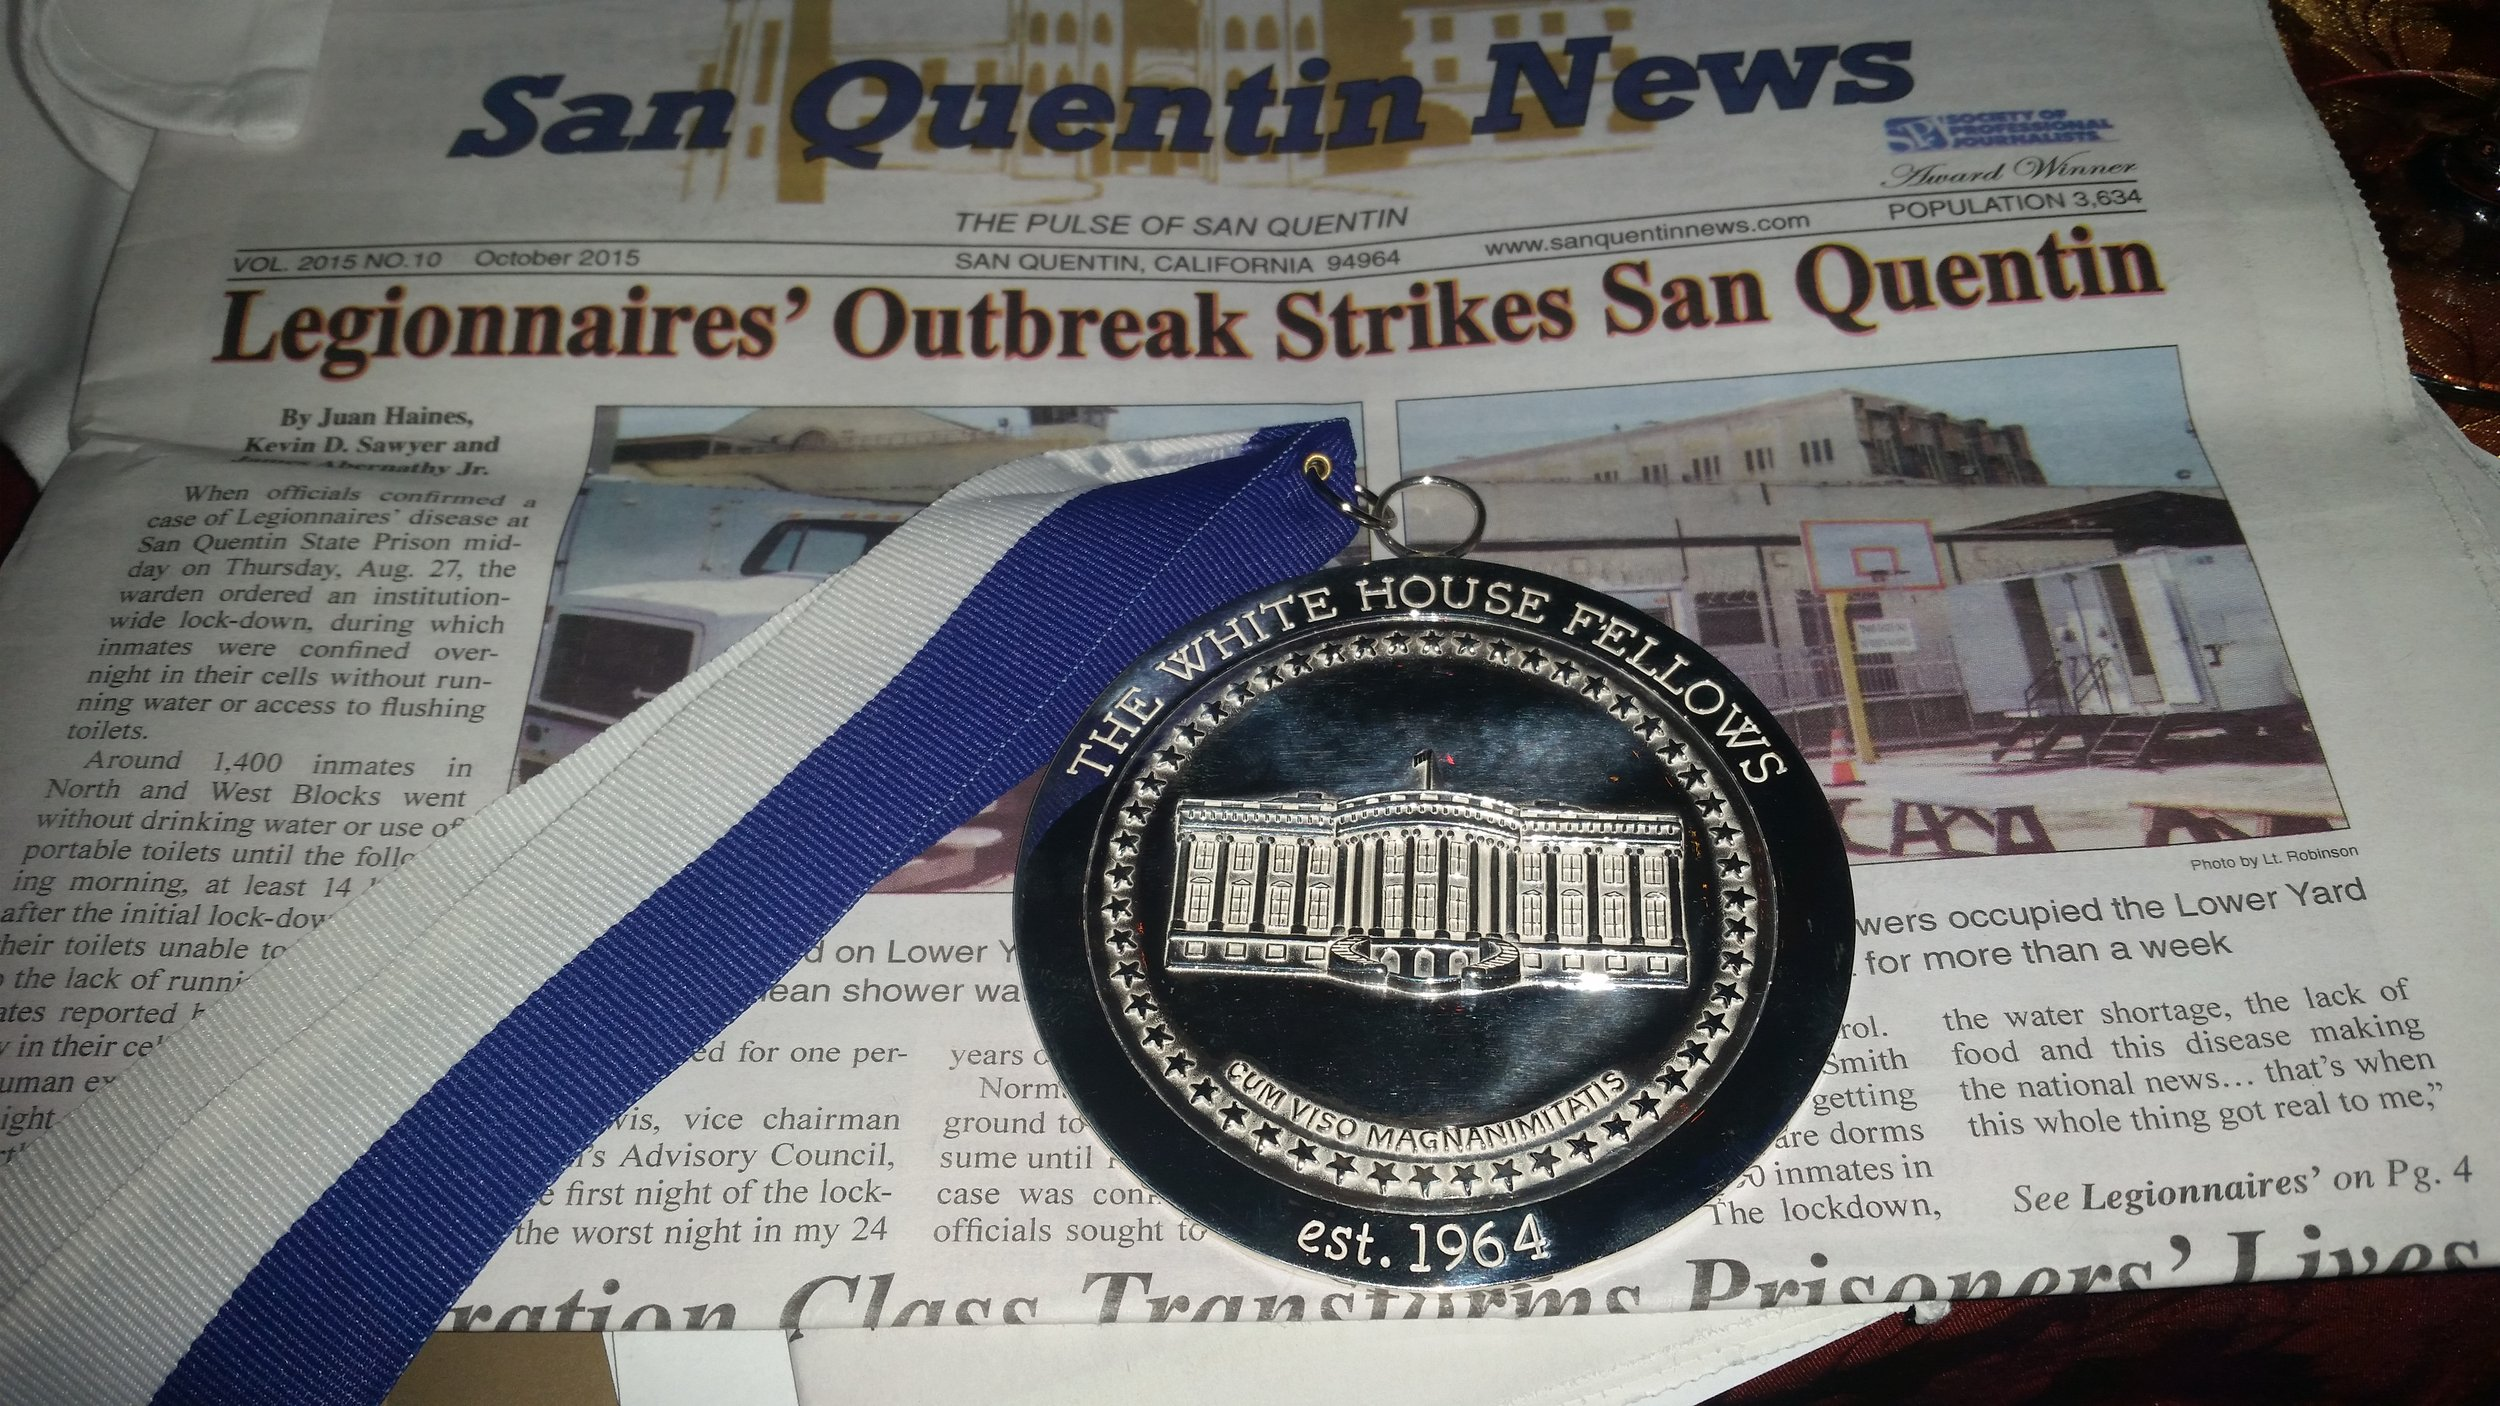 "People react to my involvement at San Quentin in so many different ways. I recently told somebody about my work at San Quentin News, and I got a most condescending response. ""They have a newspaper?"" she asked. ""How cute."" As you can see here, the newspaper is quite serious. The staff are all members of The Society for Professional Journalists."